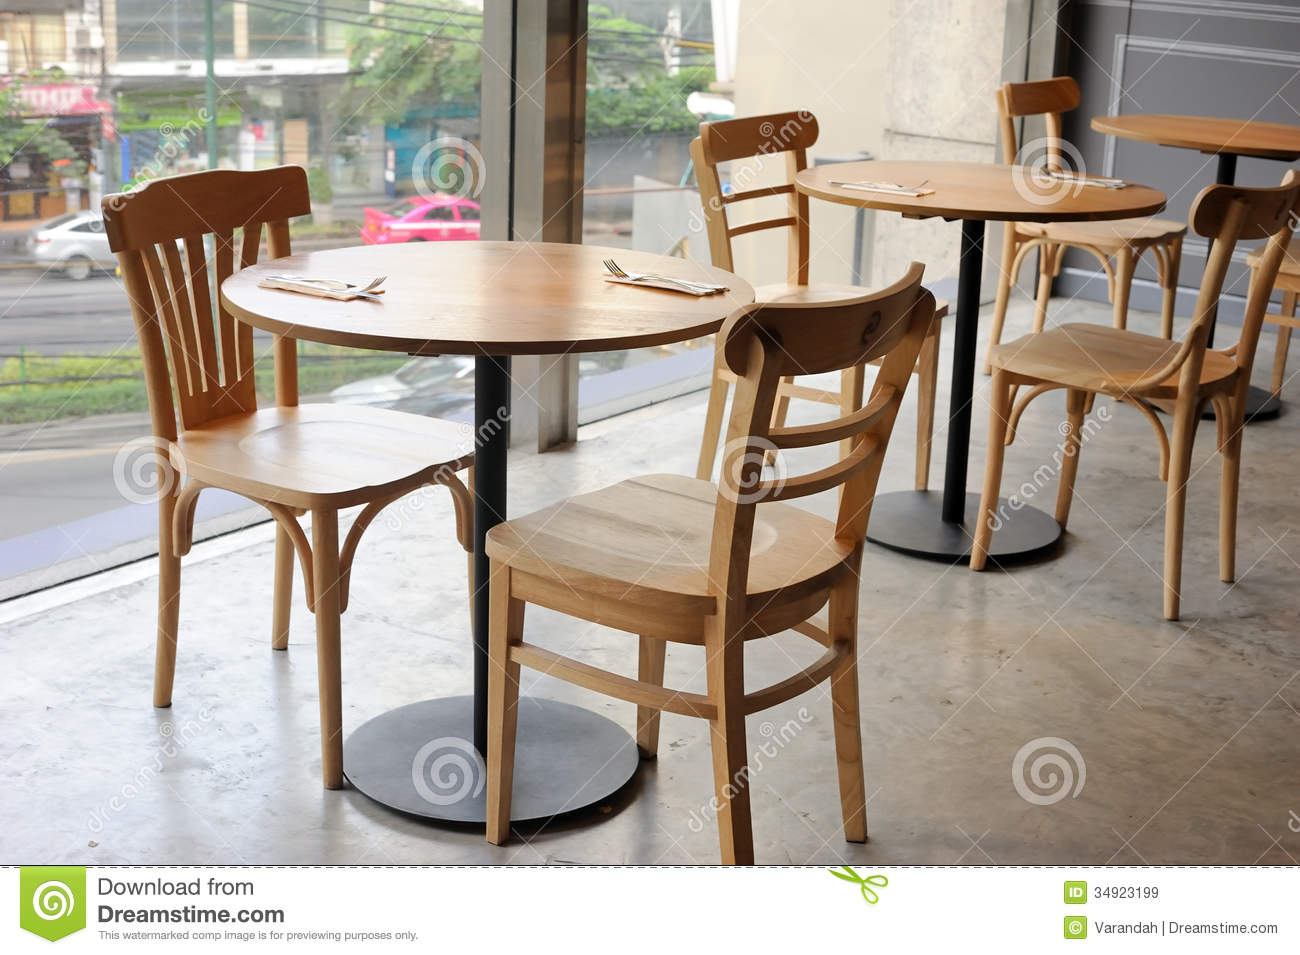 Wooden Chair And Table In Cafe Near Glass Wall Stock Image Image 34923199